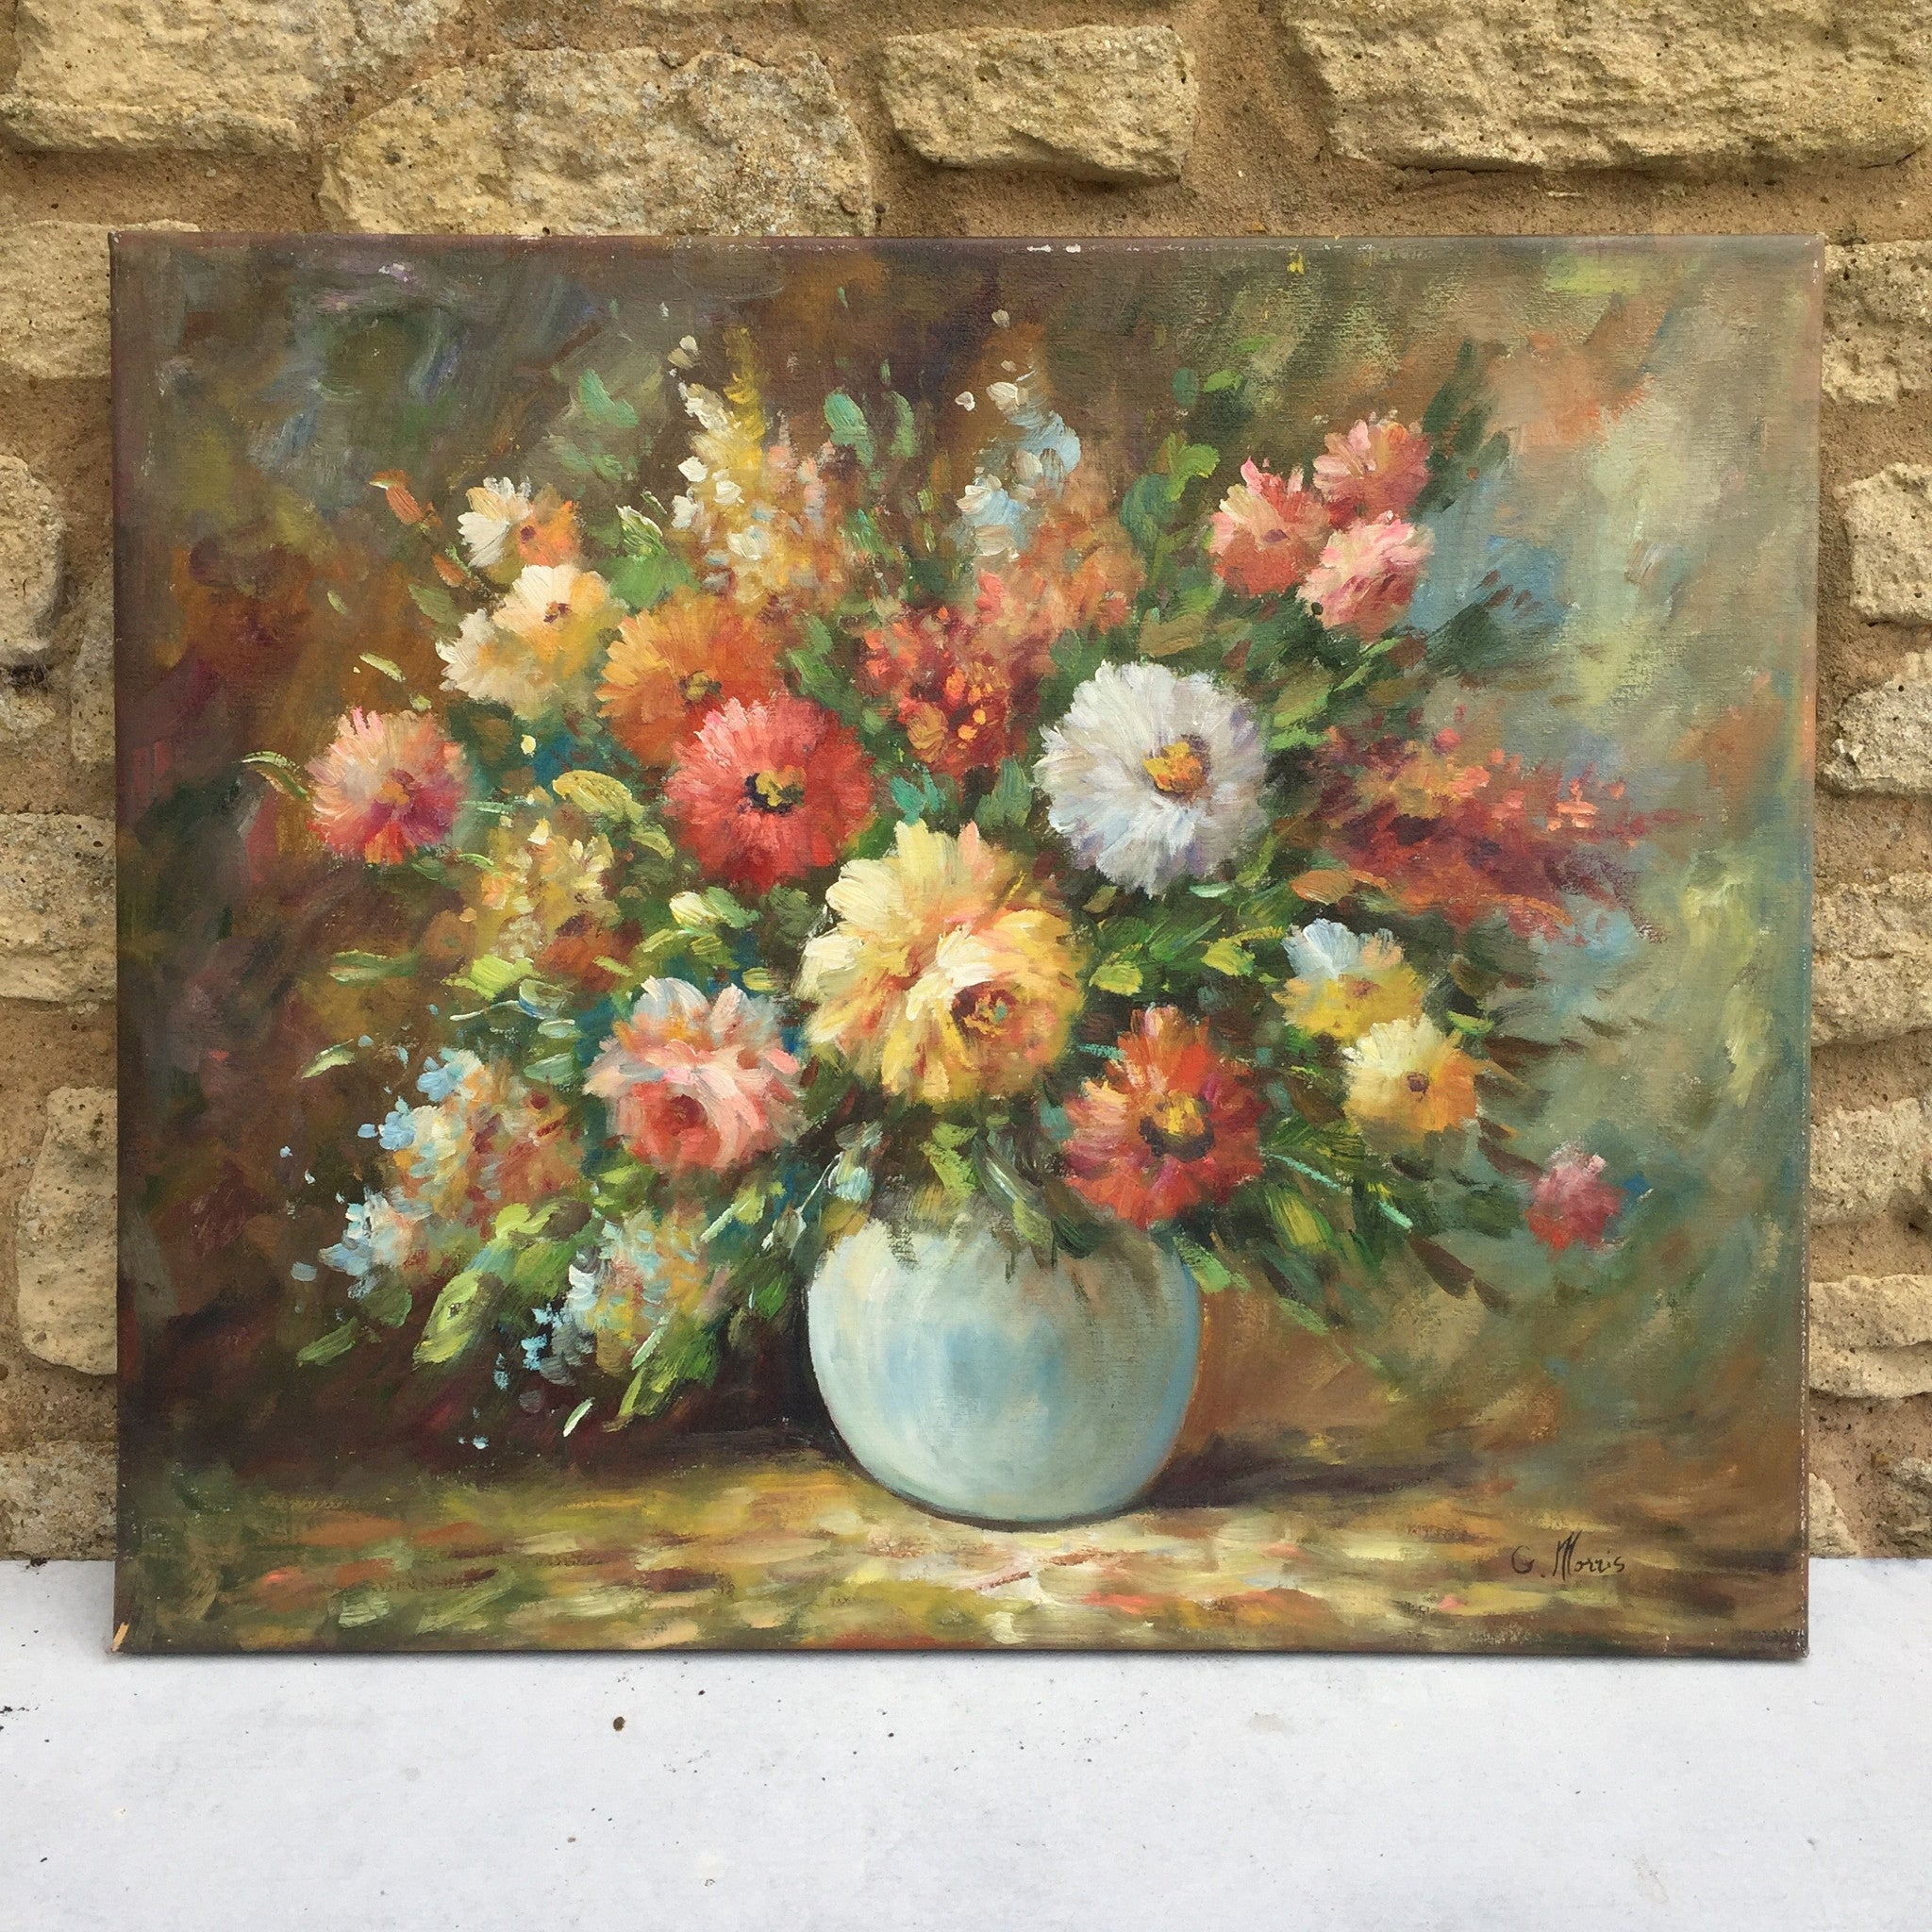 Vintage French Still Life of Flowers